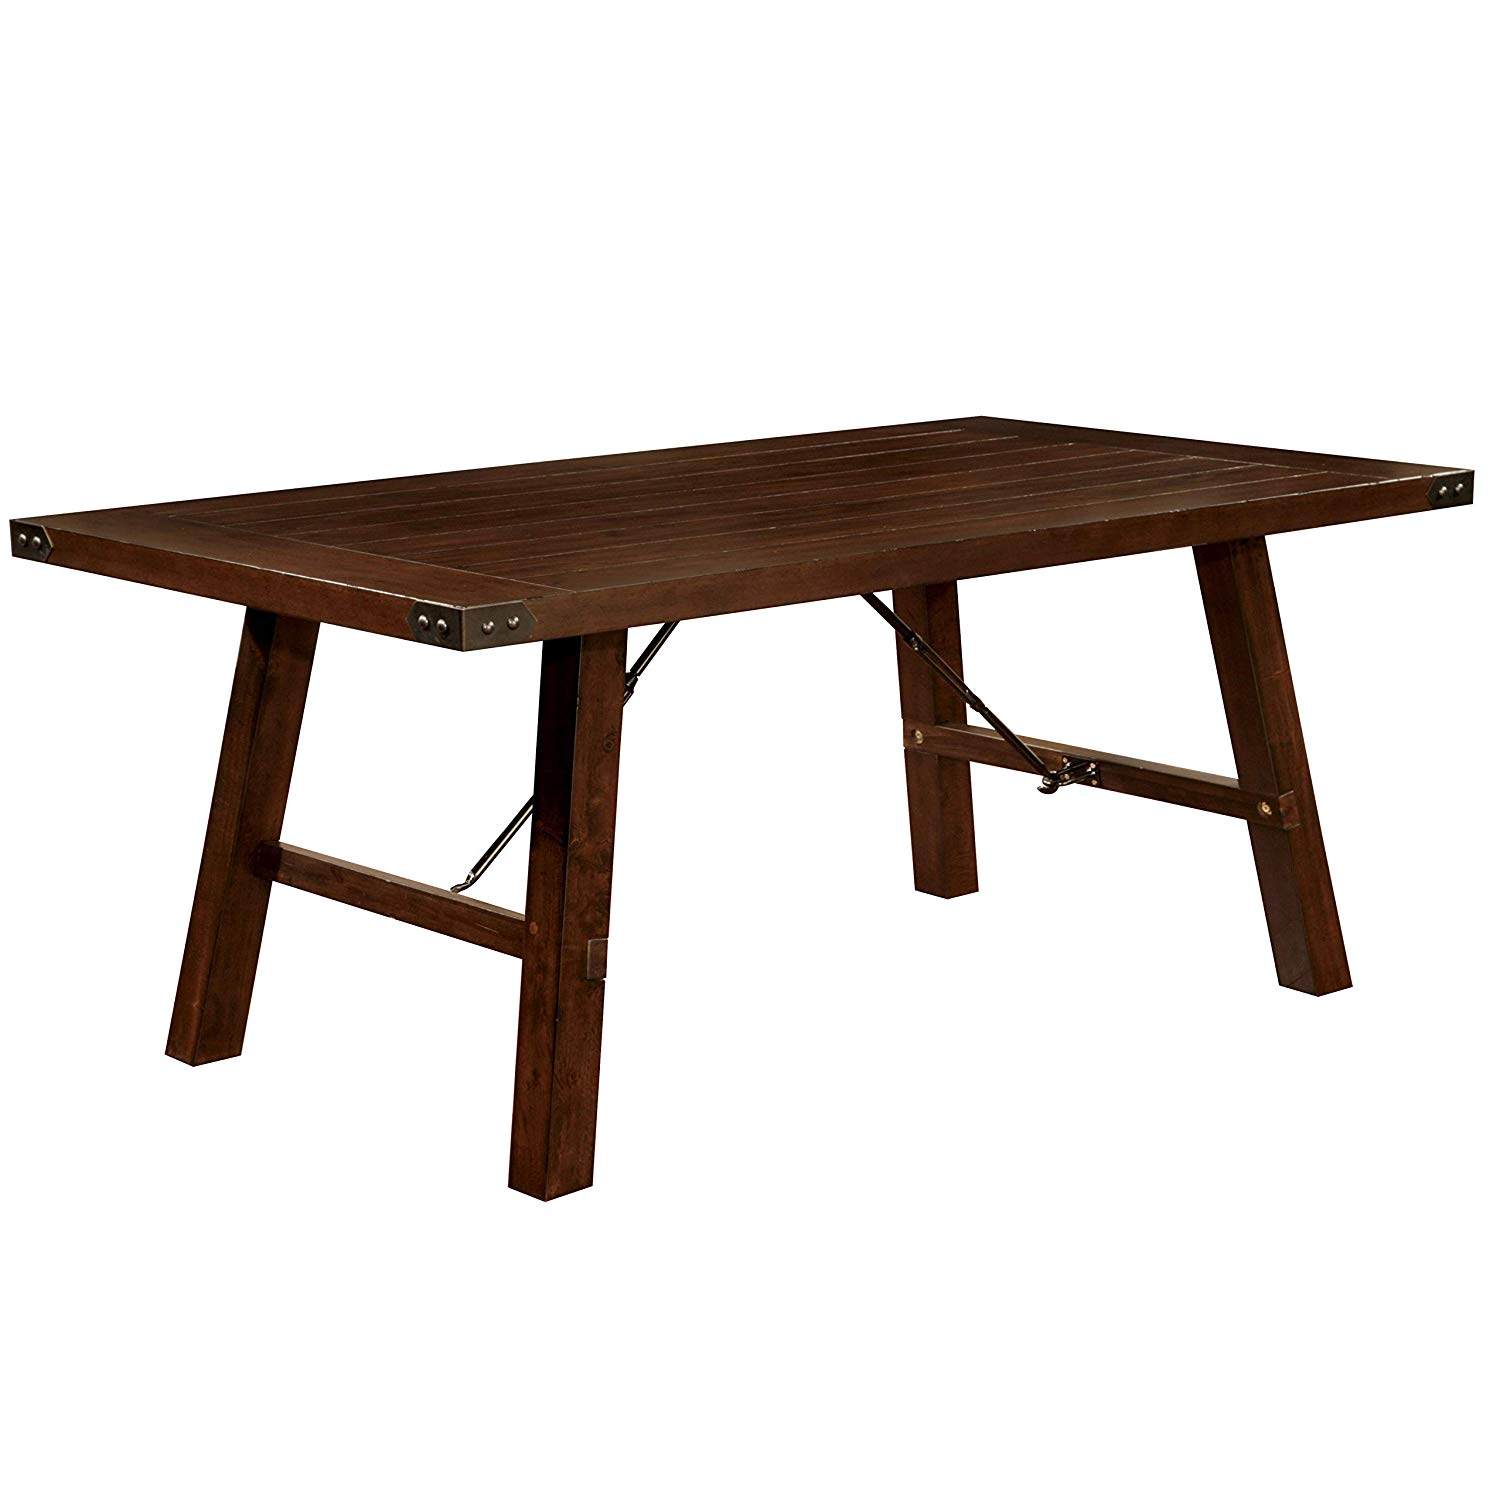 furniture america montelle dark oak dining table threshold accent espresso tables outdoor battery lamps camping bunnings round wood coffee with metal legs black velvet curtains